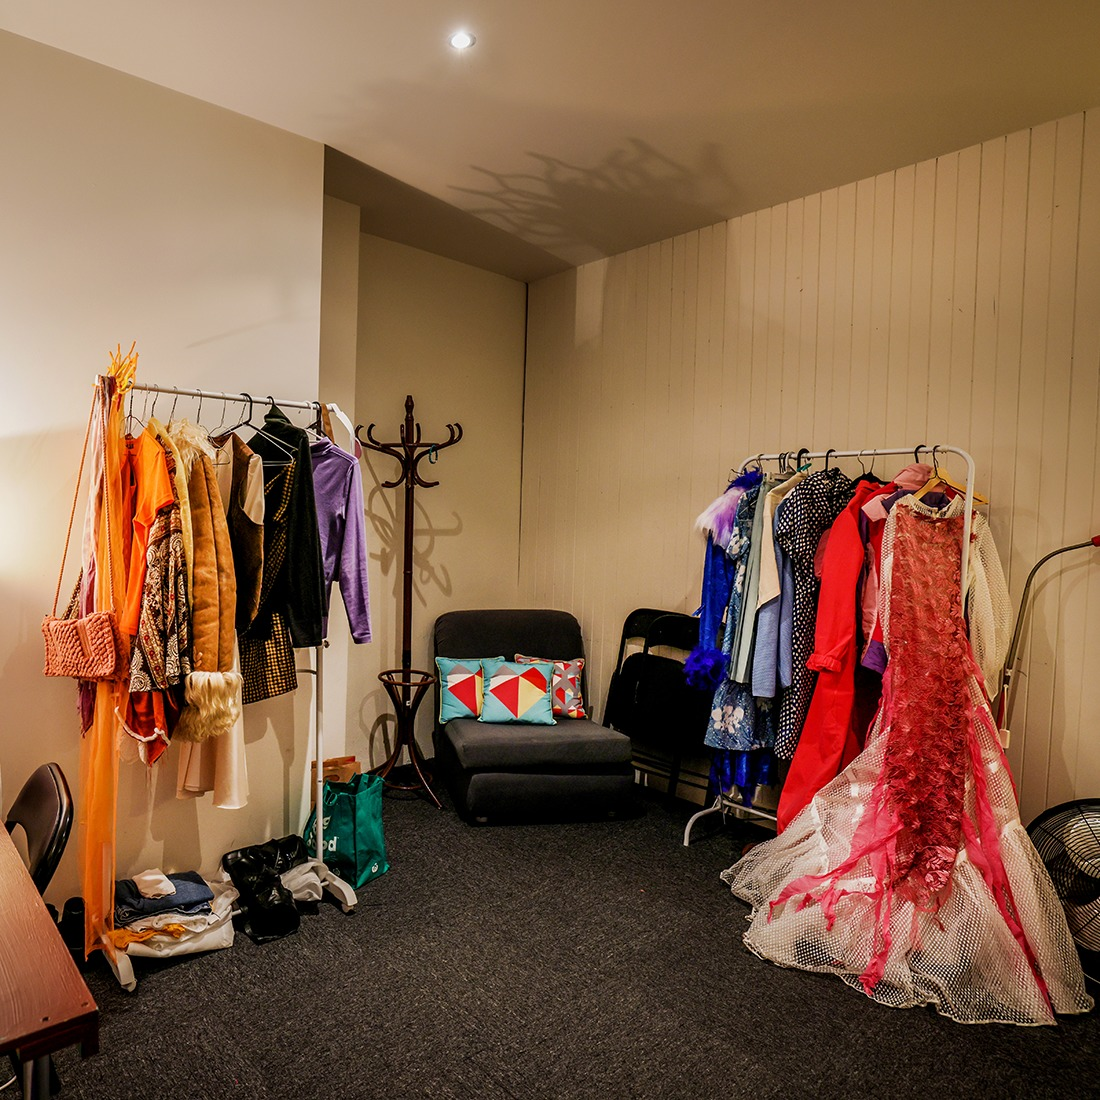 Dressing room filled with costumes on hangers